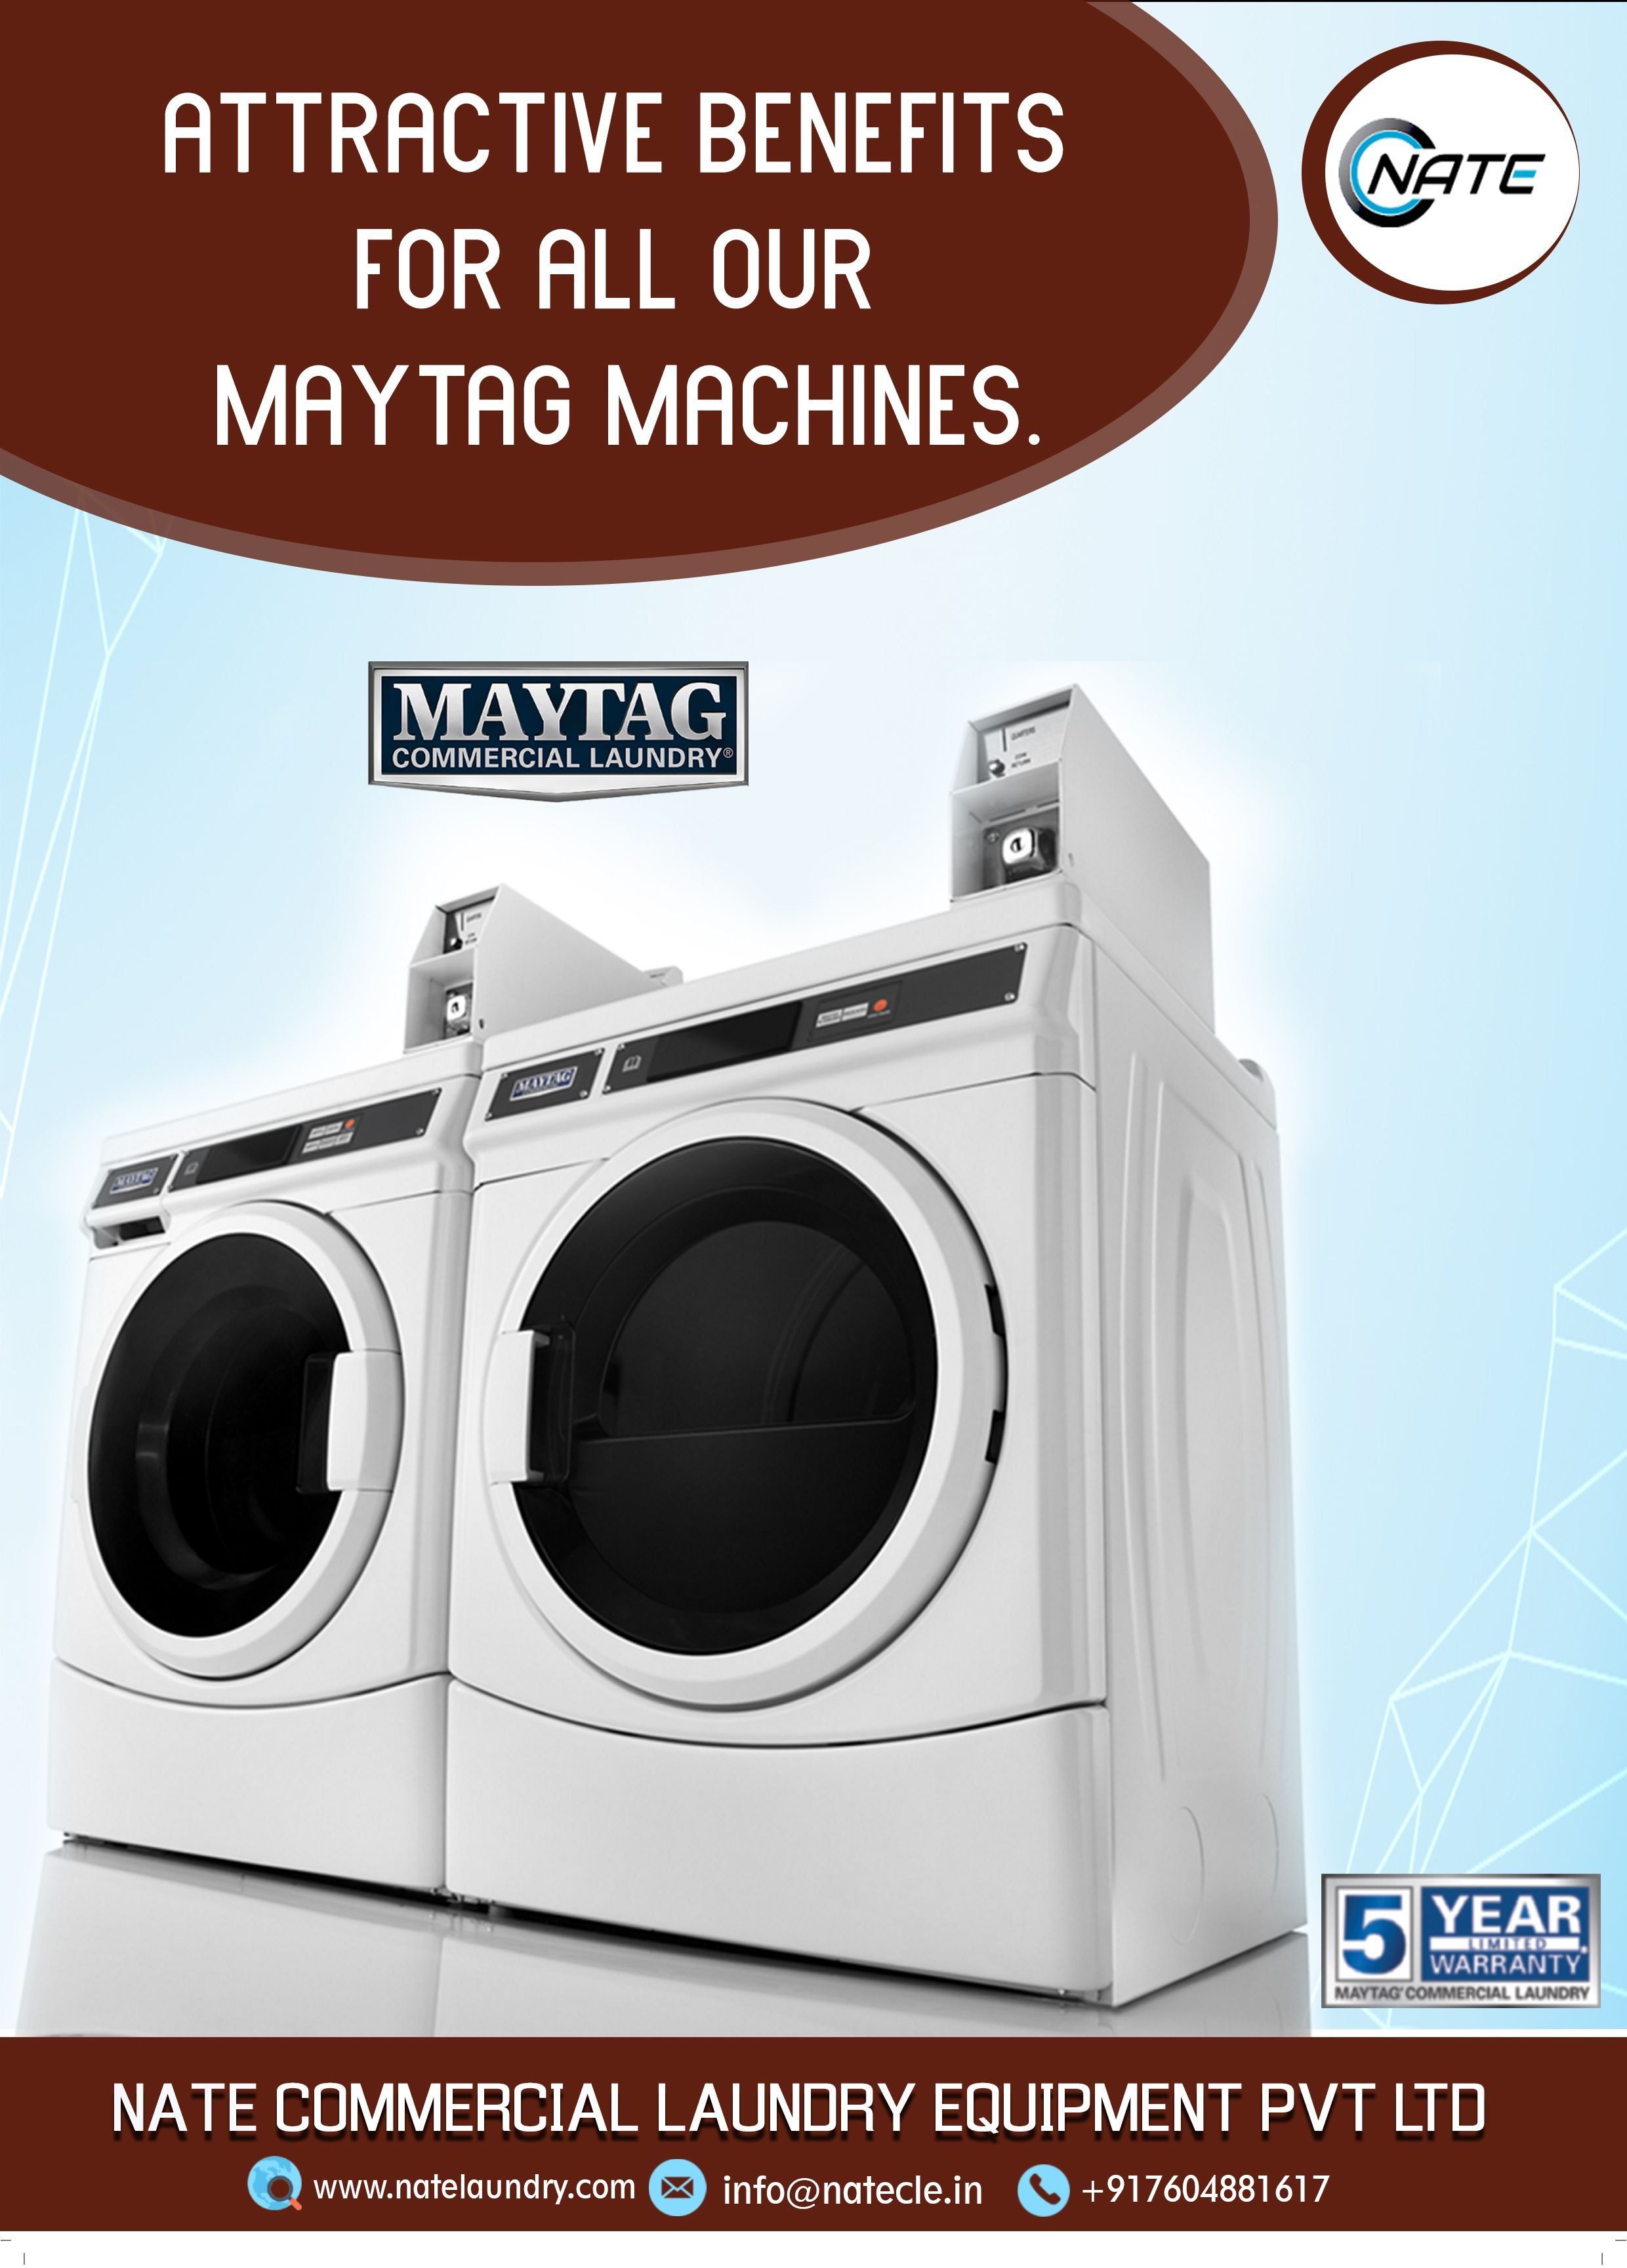 Nate Commercial Laundry Equipment Sale Call Us 91 76048